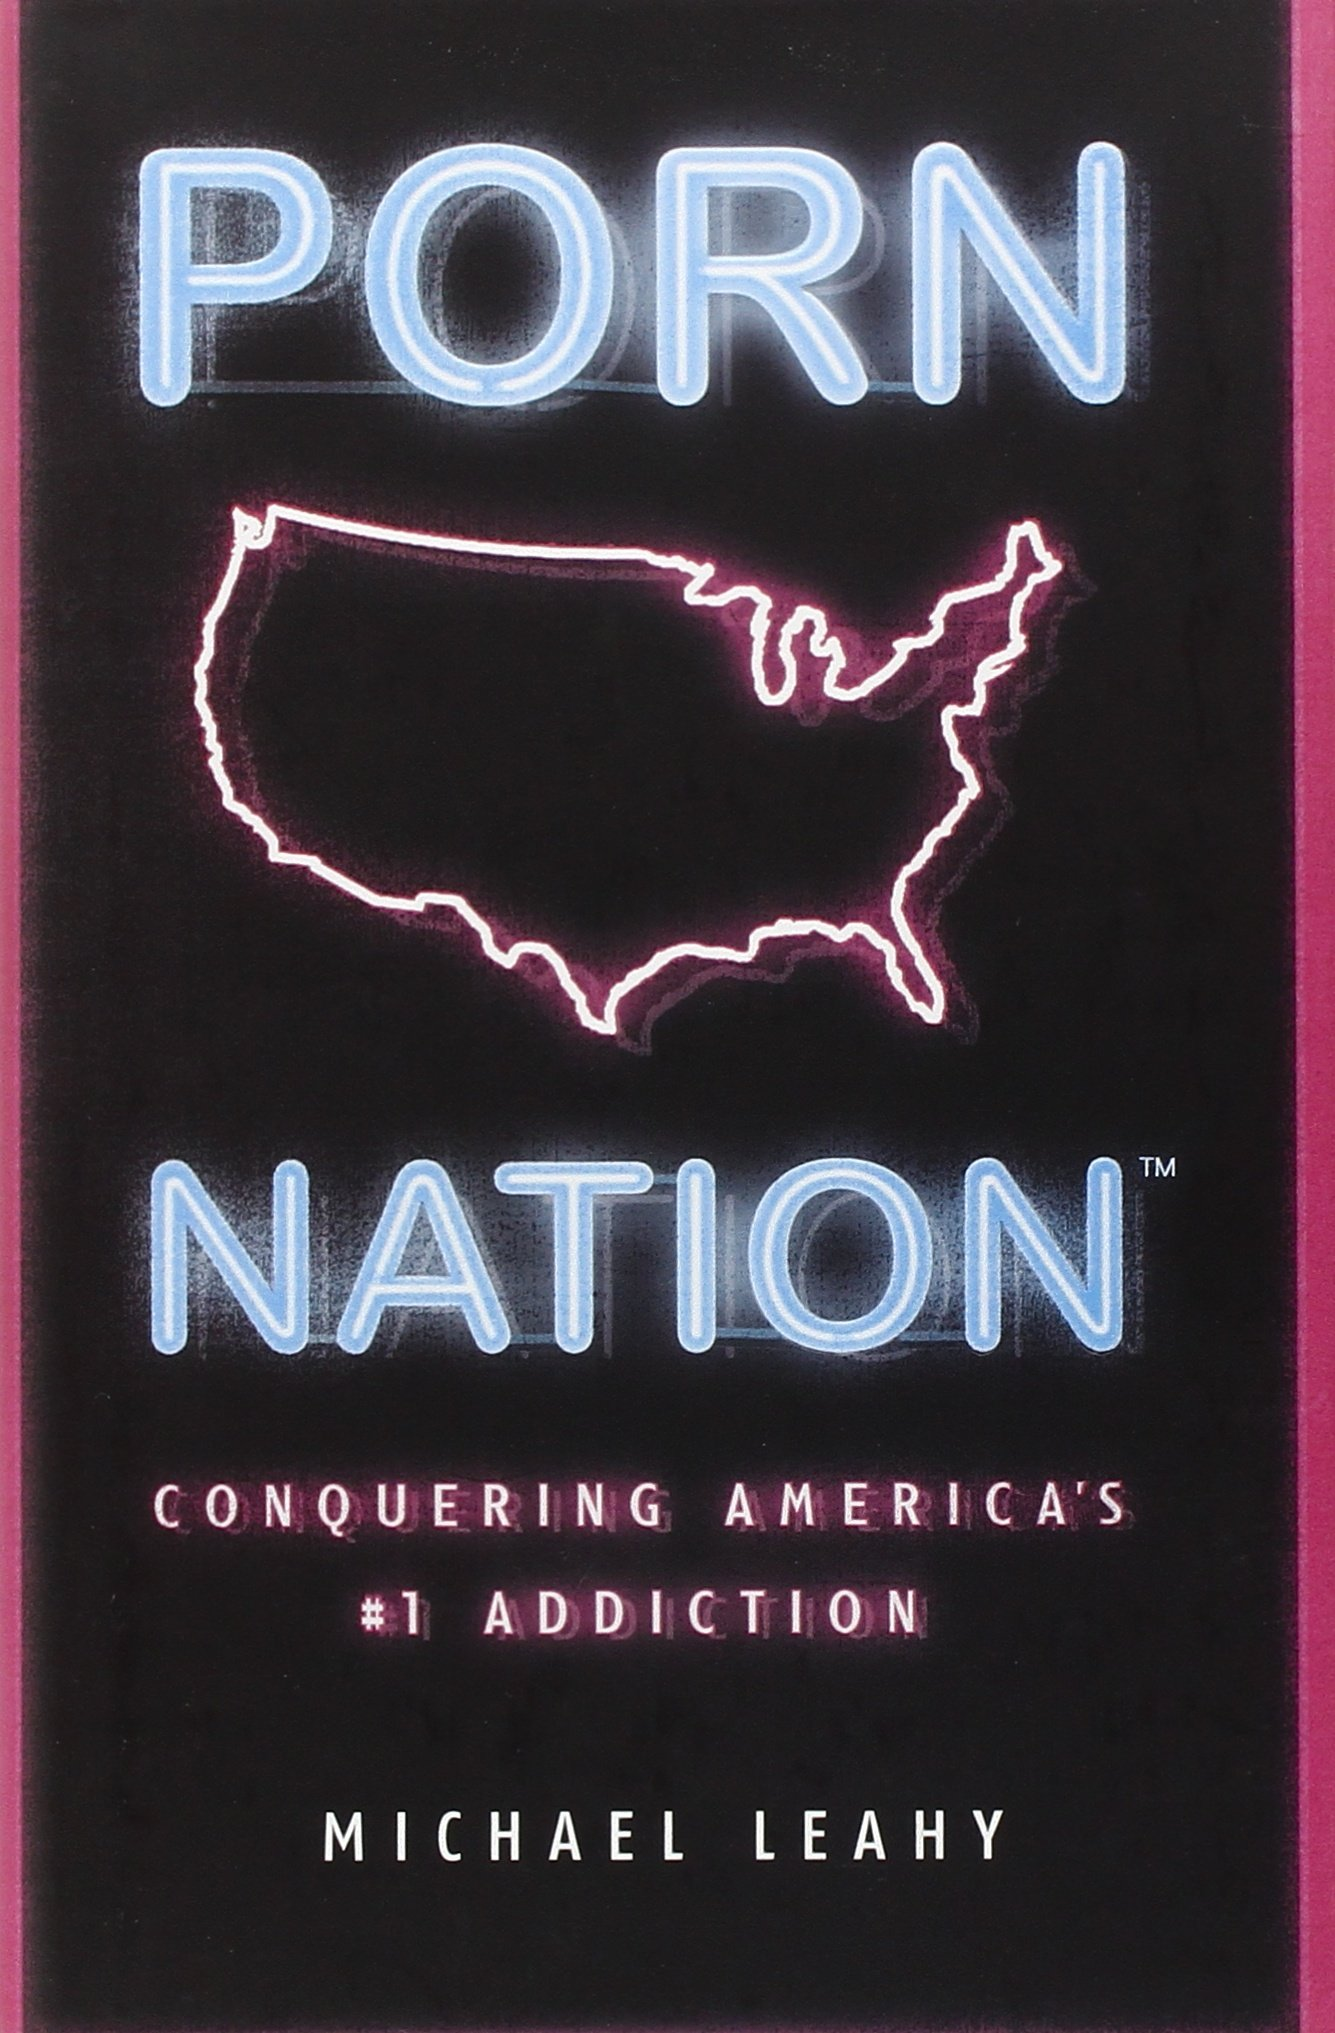 Image result for Porn Nation: Conquering America's #1 Addiction